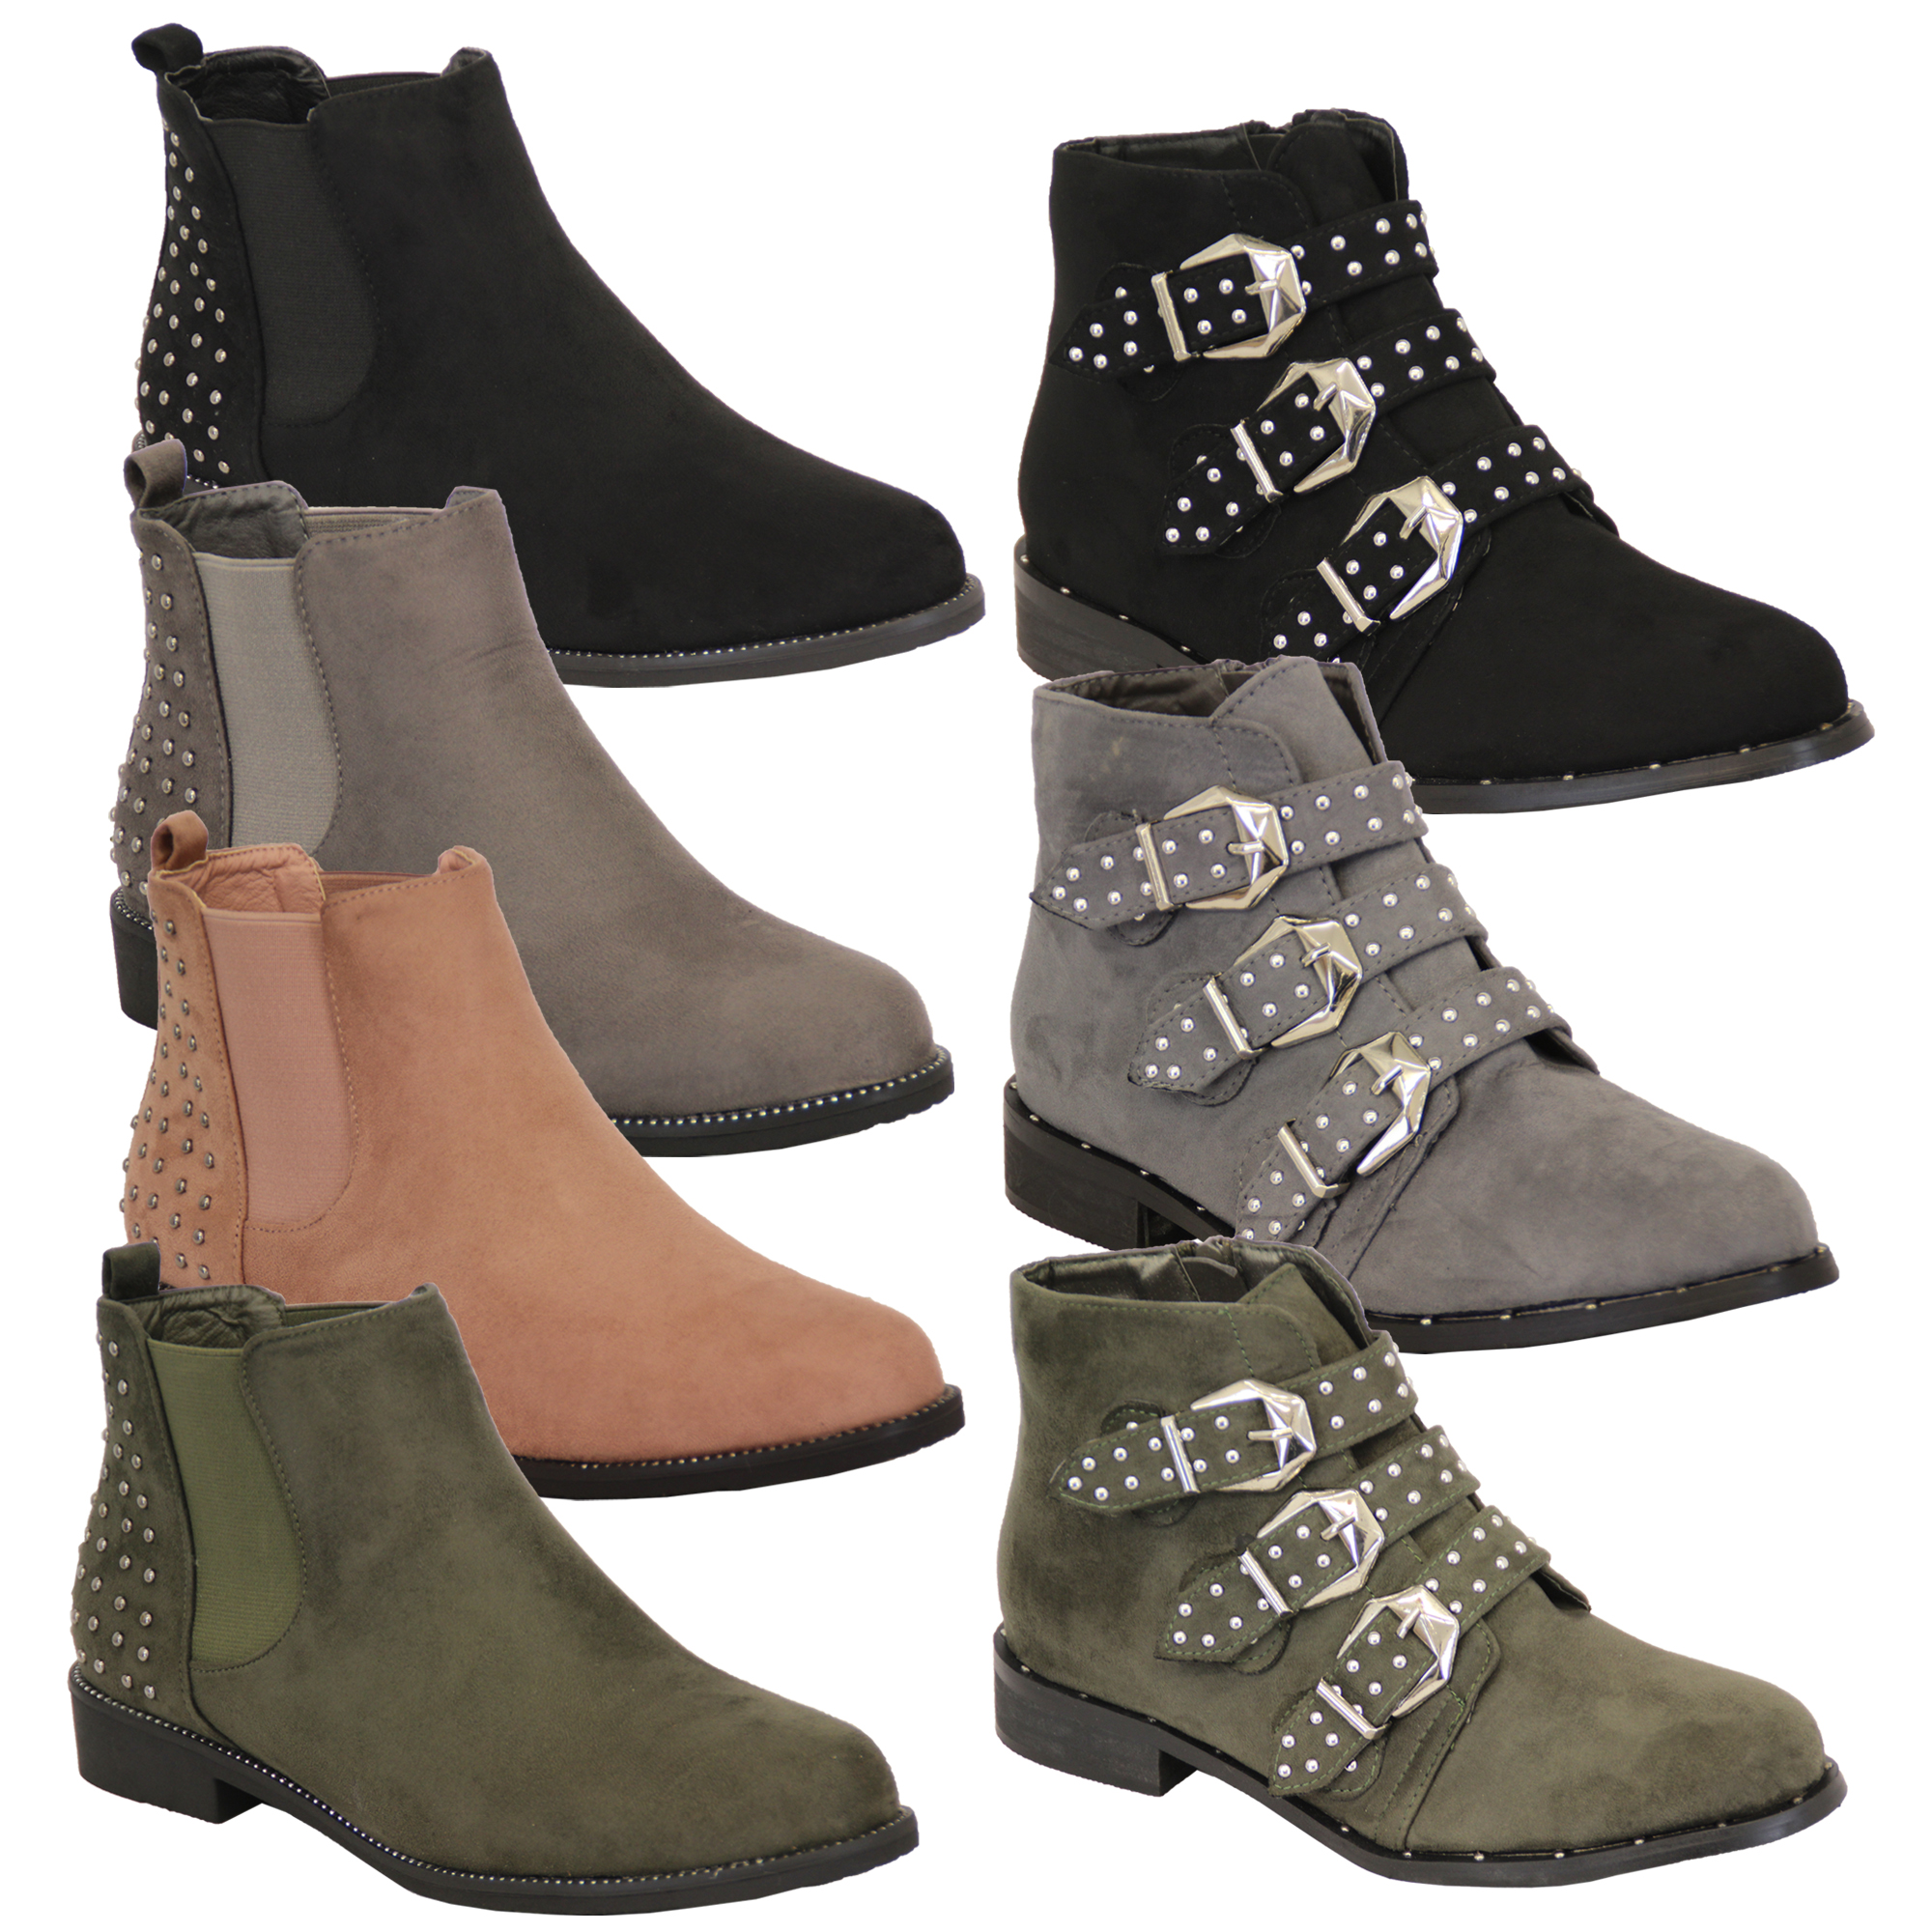 Ladies-Chelsea-Biker-Boots-Womens-Suede-Look-Studded-High-Ankle-Zip-Buckle-Shoes thumbnail 22